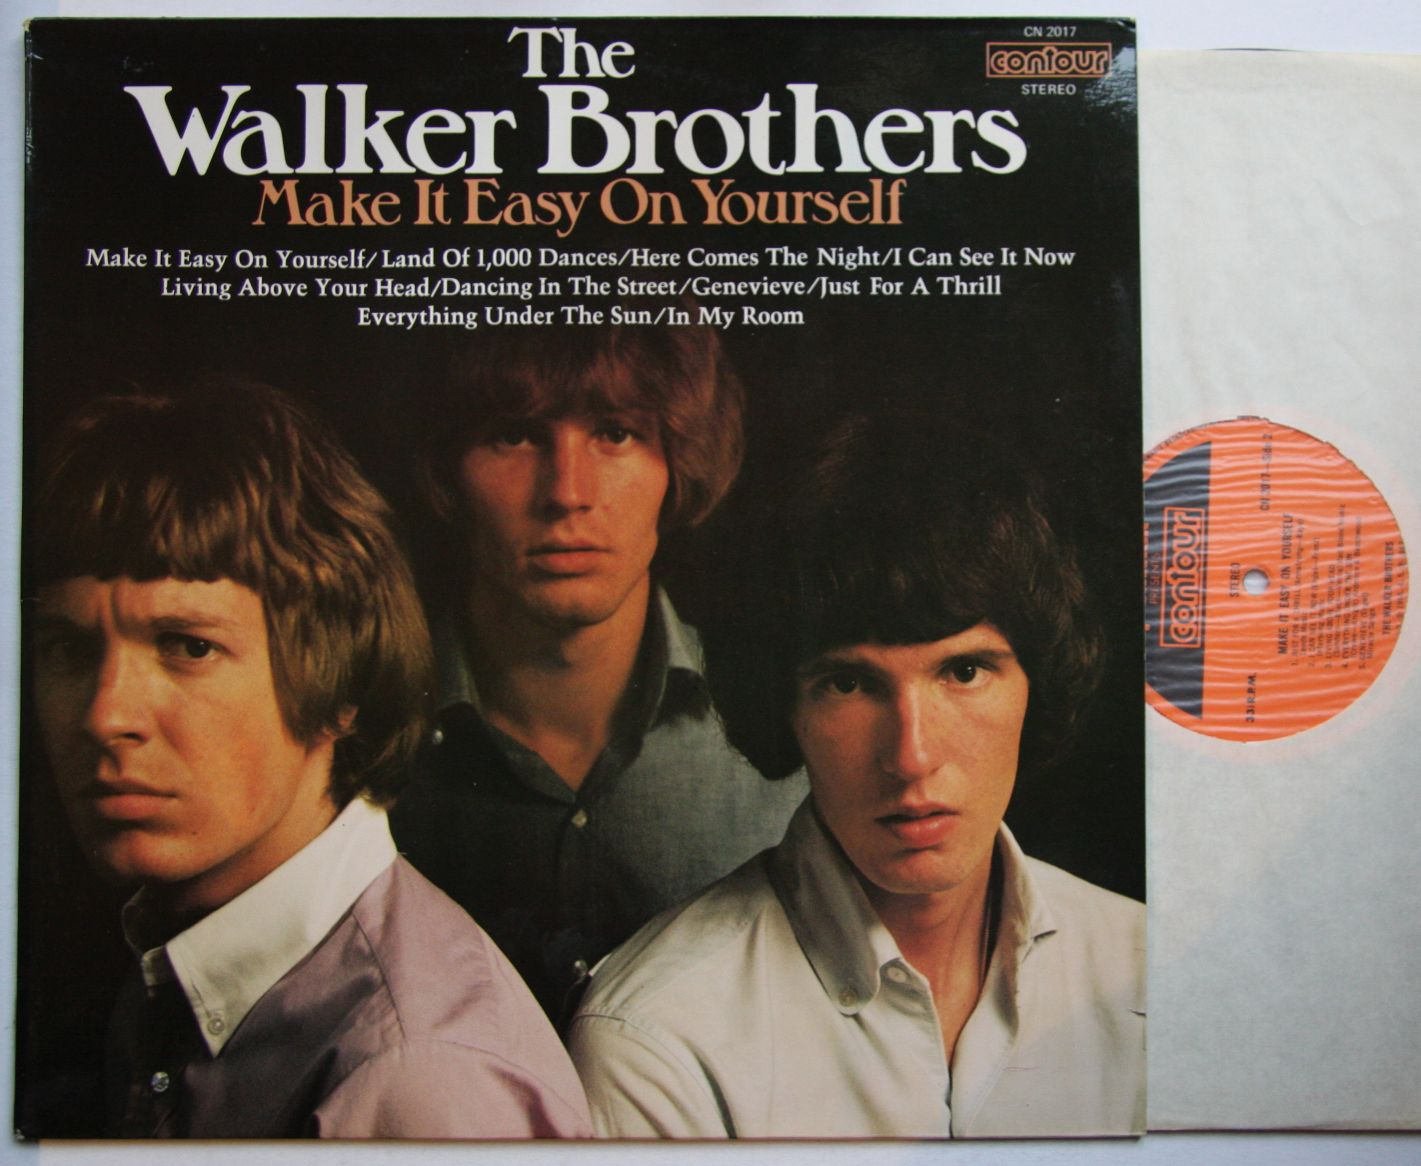 The Walker Brothers Take It Easy